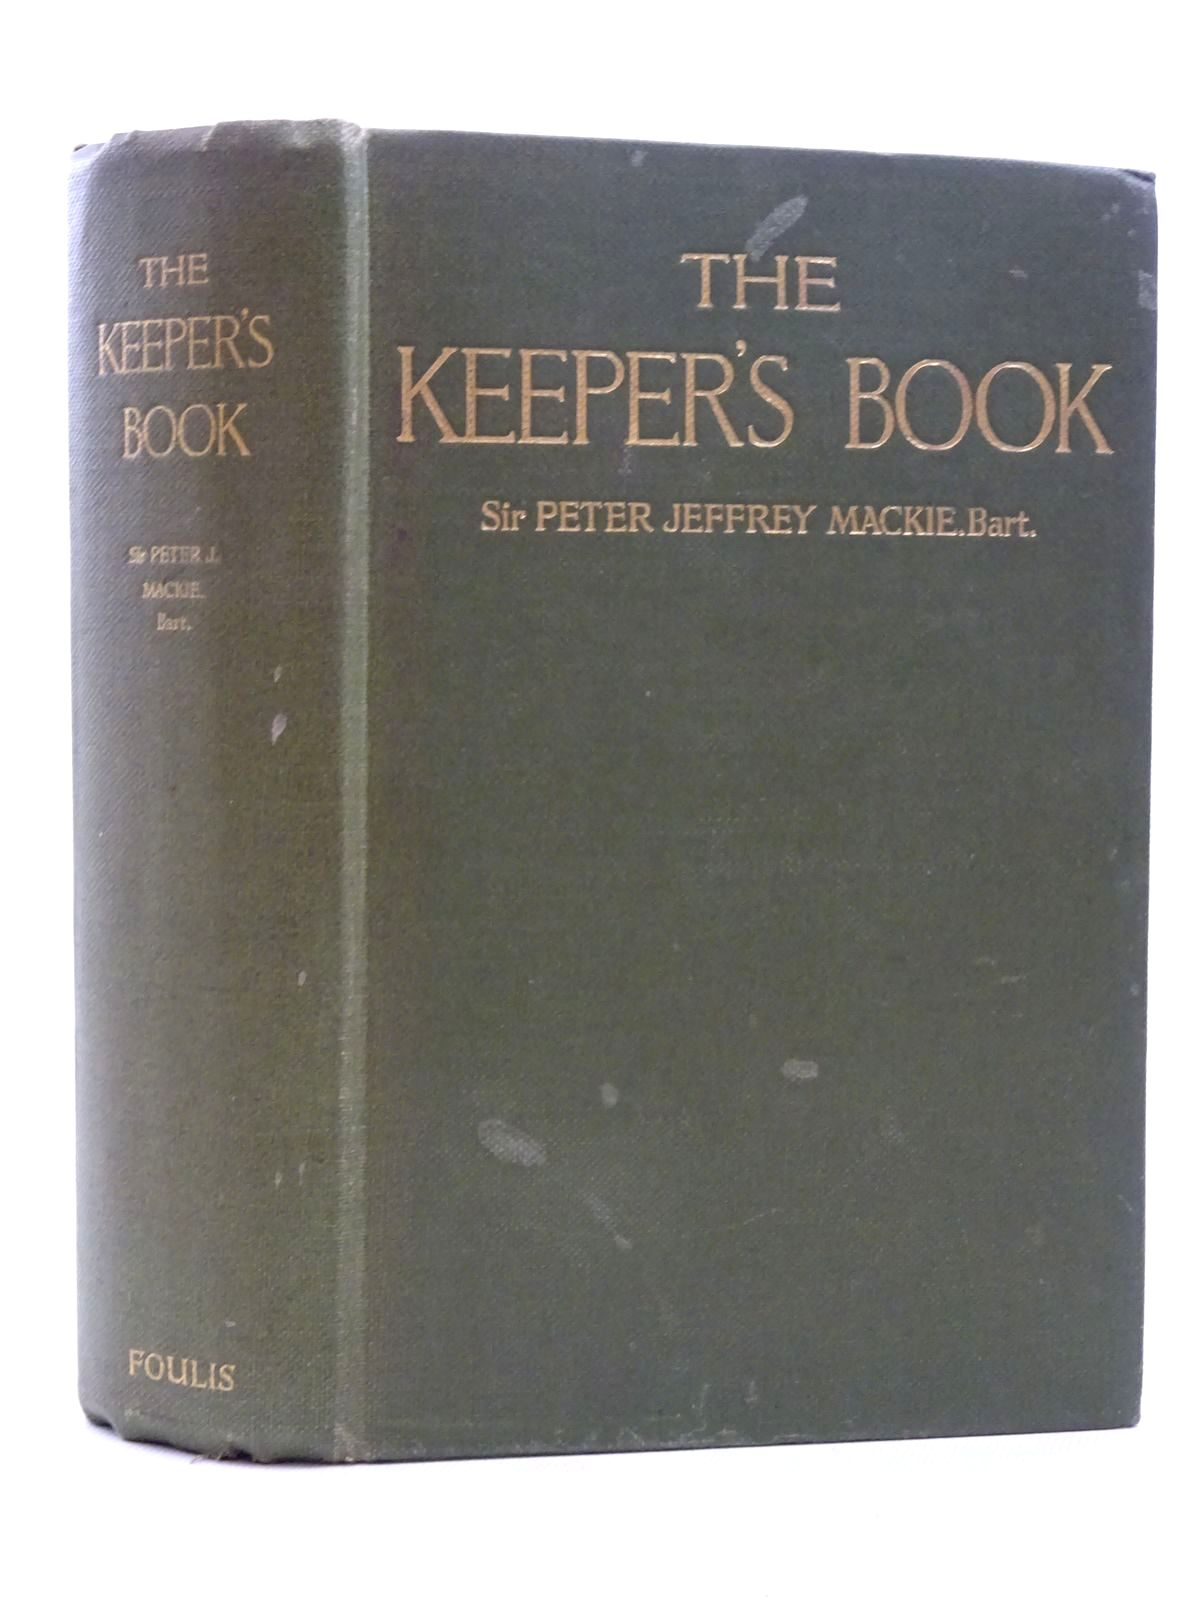 Photo of THE KEEPER'S BOOK A GUIDE TO THE DUTIES OF A GAMEKEEPER written by Mackie, Peter Jeffrey<br />et al, published by G.T. Foulis & Co. Ltd. (STOCK CODE: 2125272)  for sale by Stella & Rose's Books